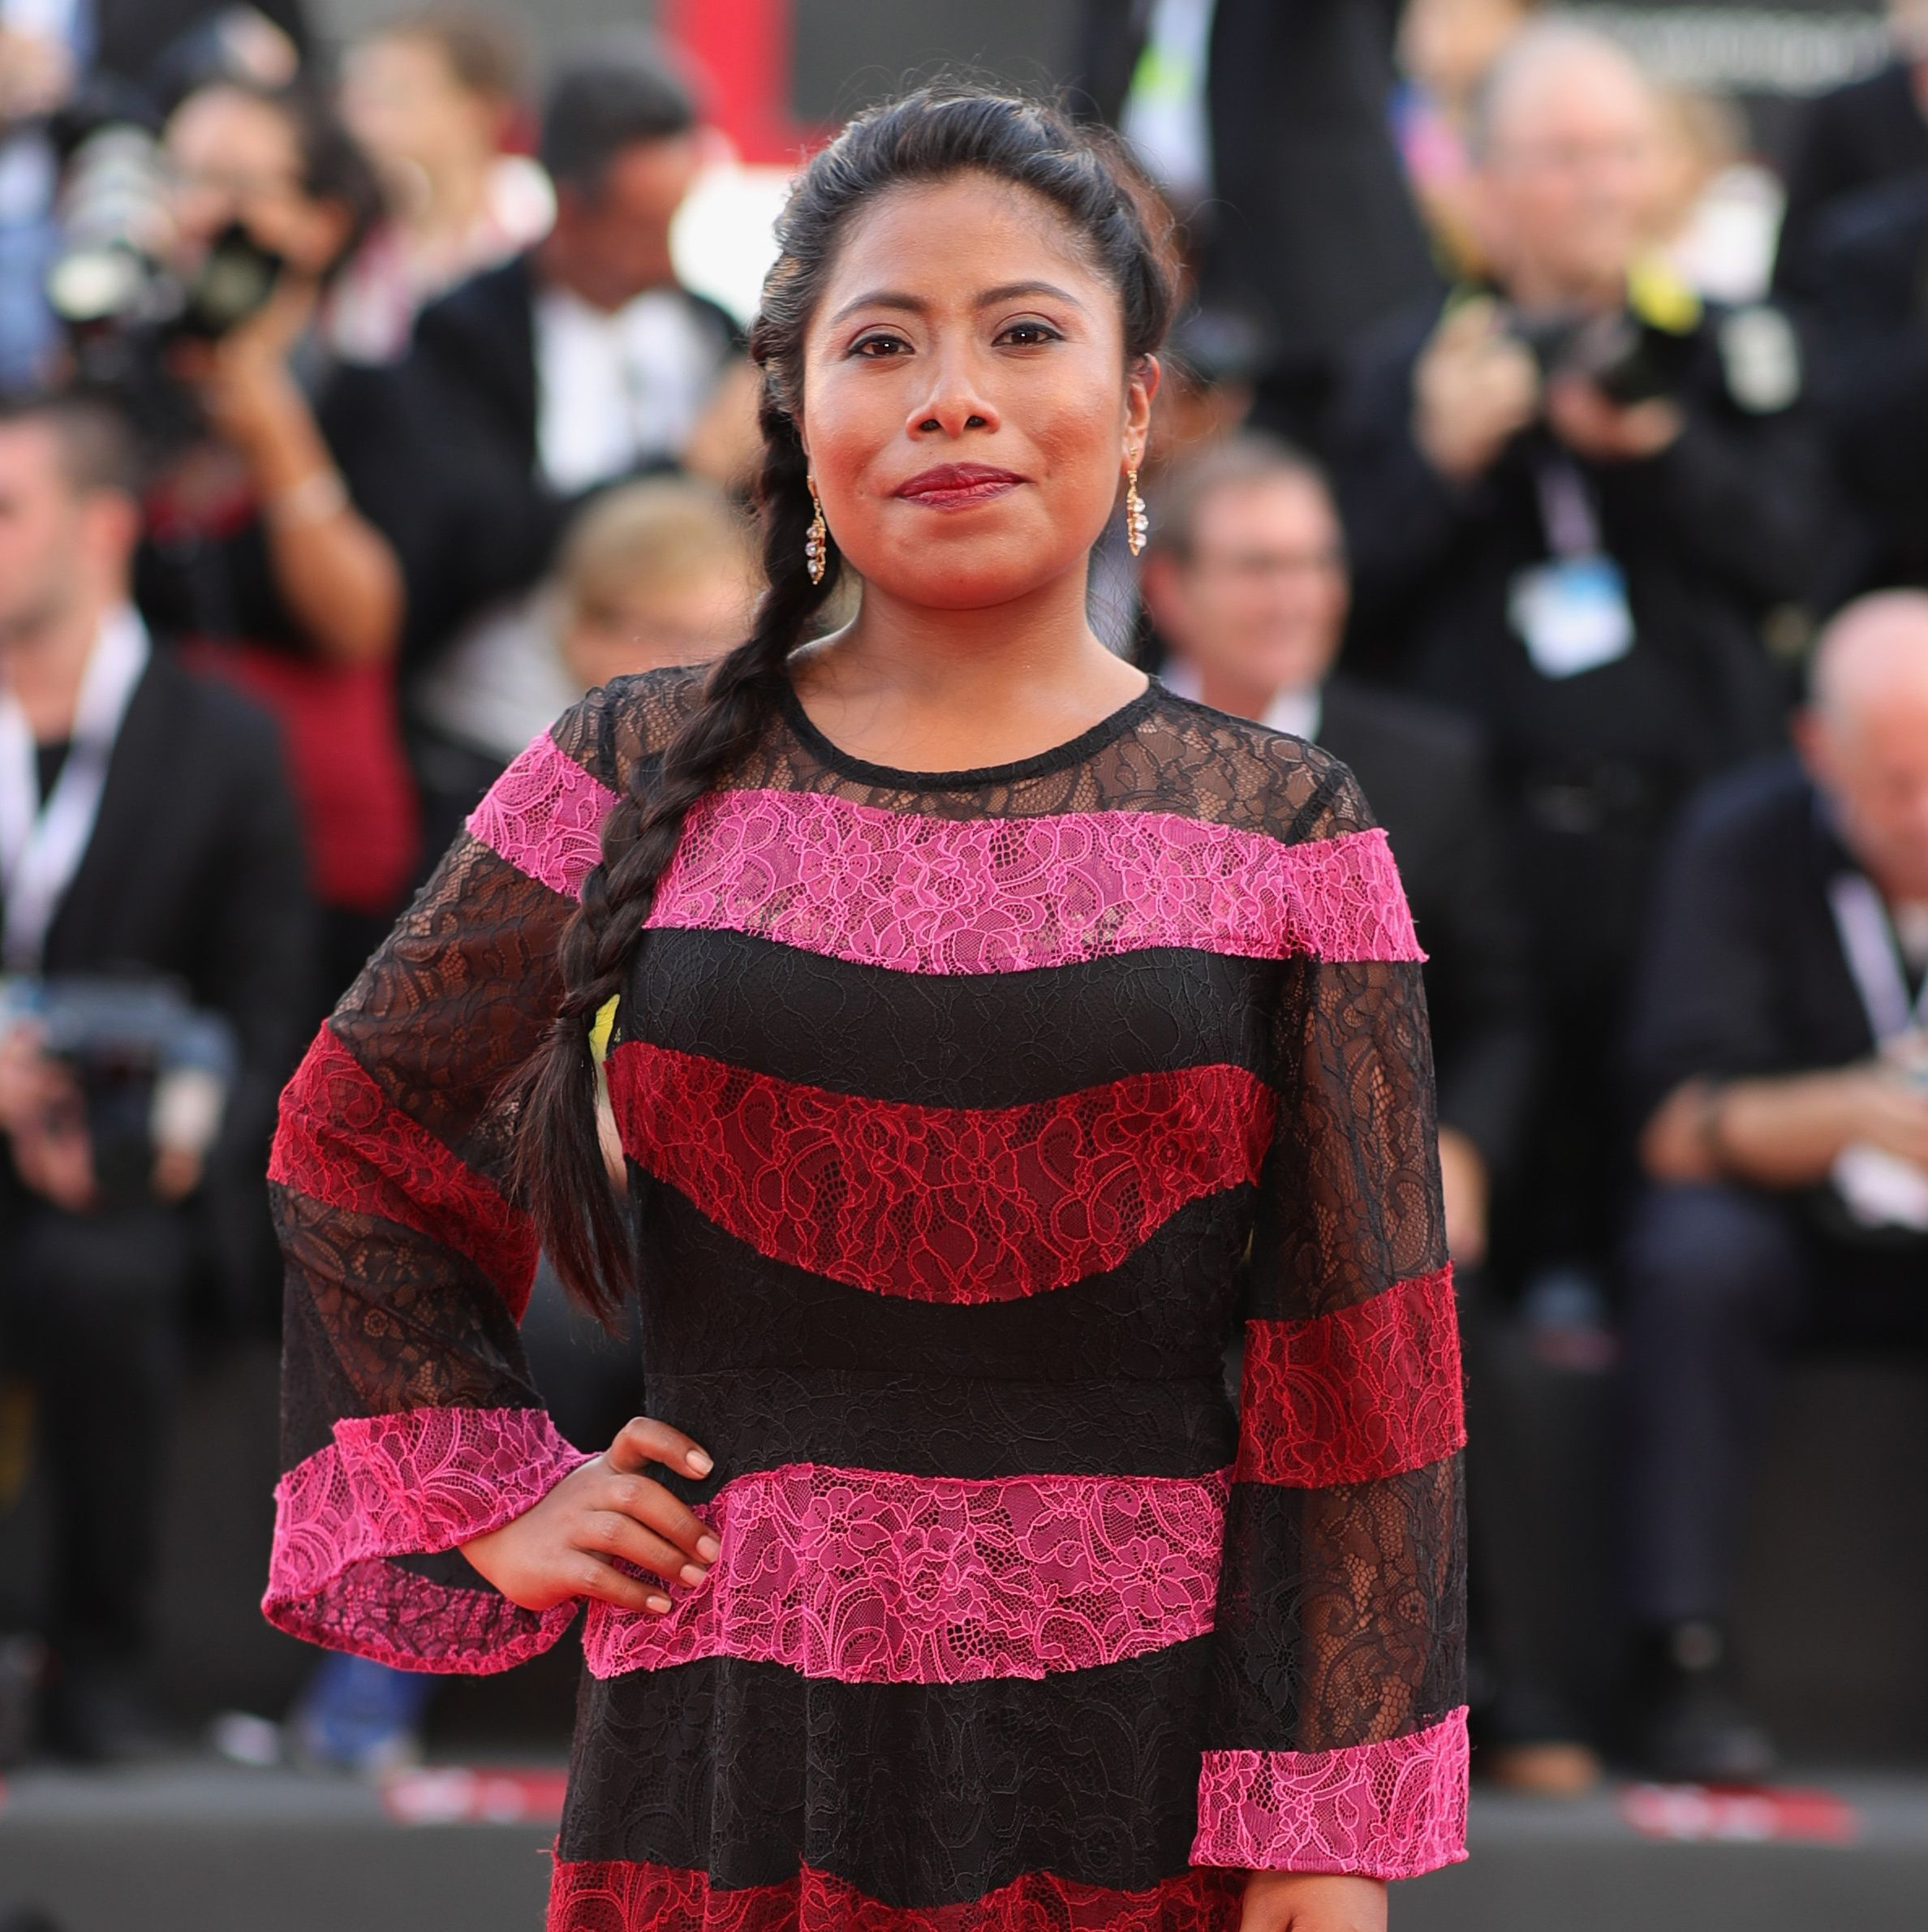 Everything You Need to Know About Yalitza Aparicio, the Star of Netflix's 'Roma'